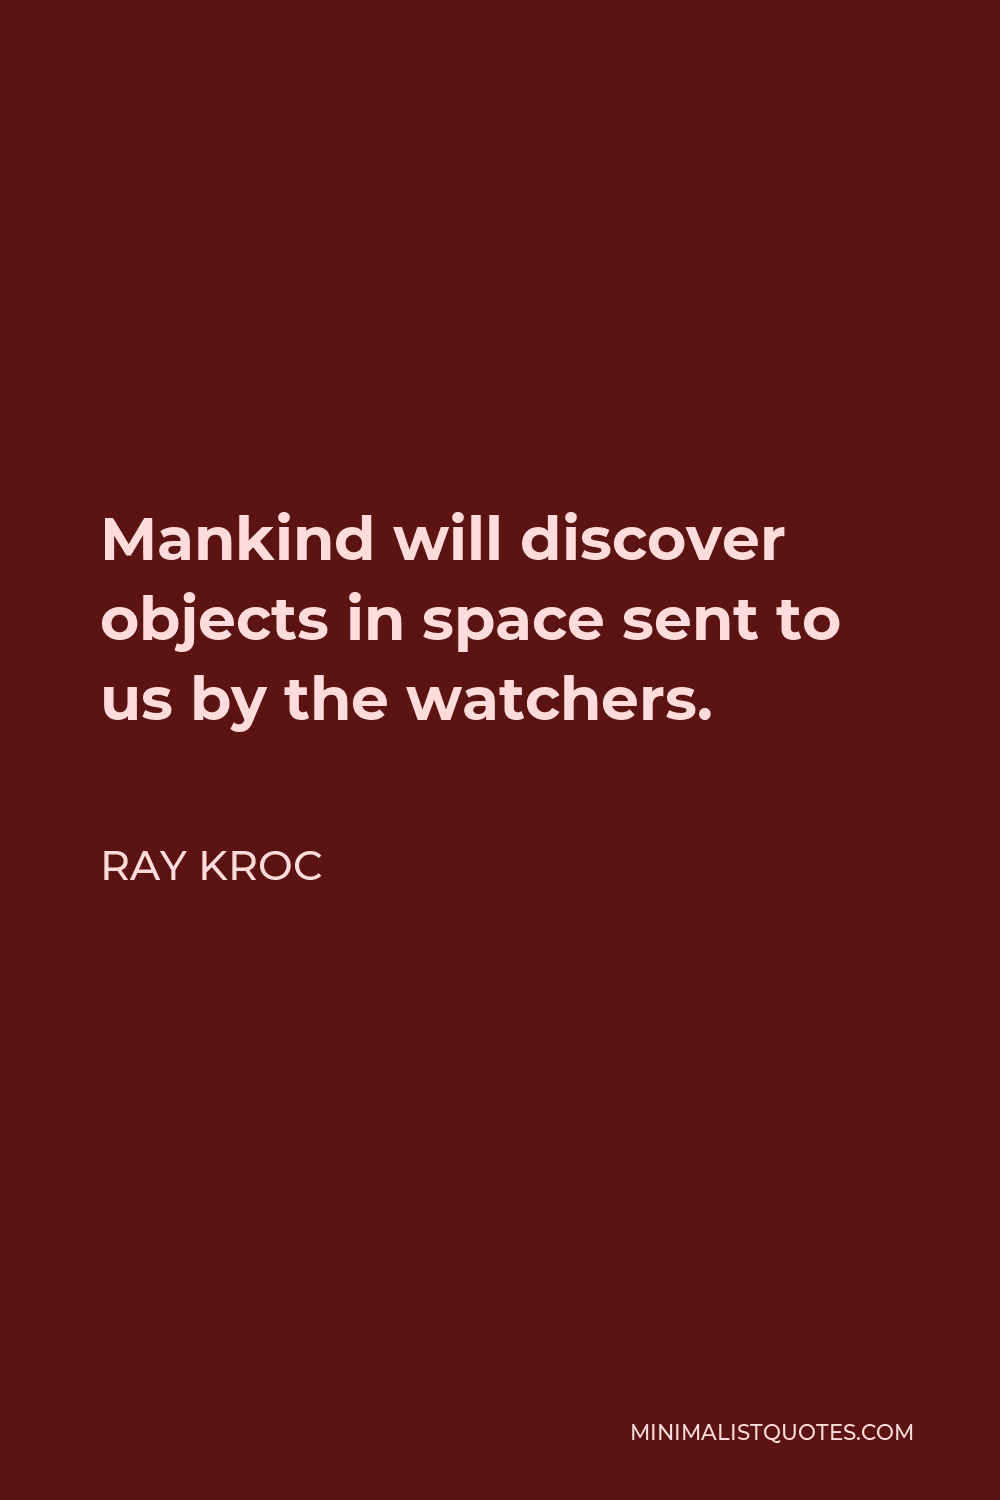 Ray Kroc Quote - Mankind will discover objects in space sent to us by the watchers.